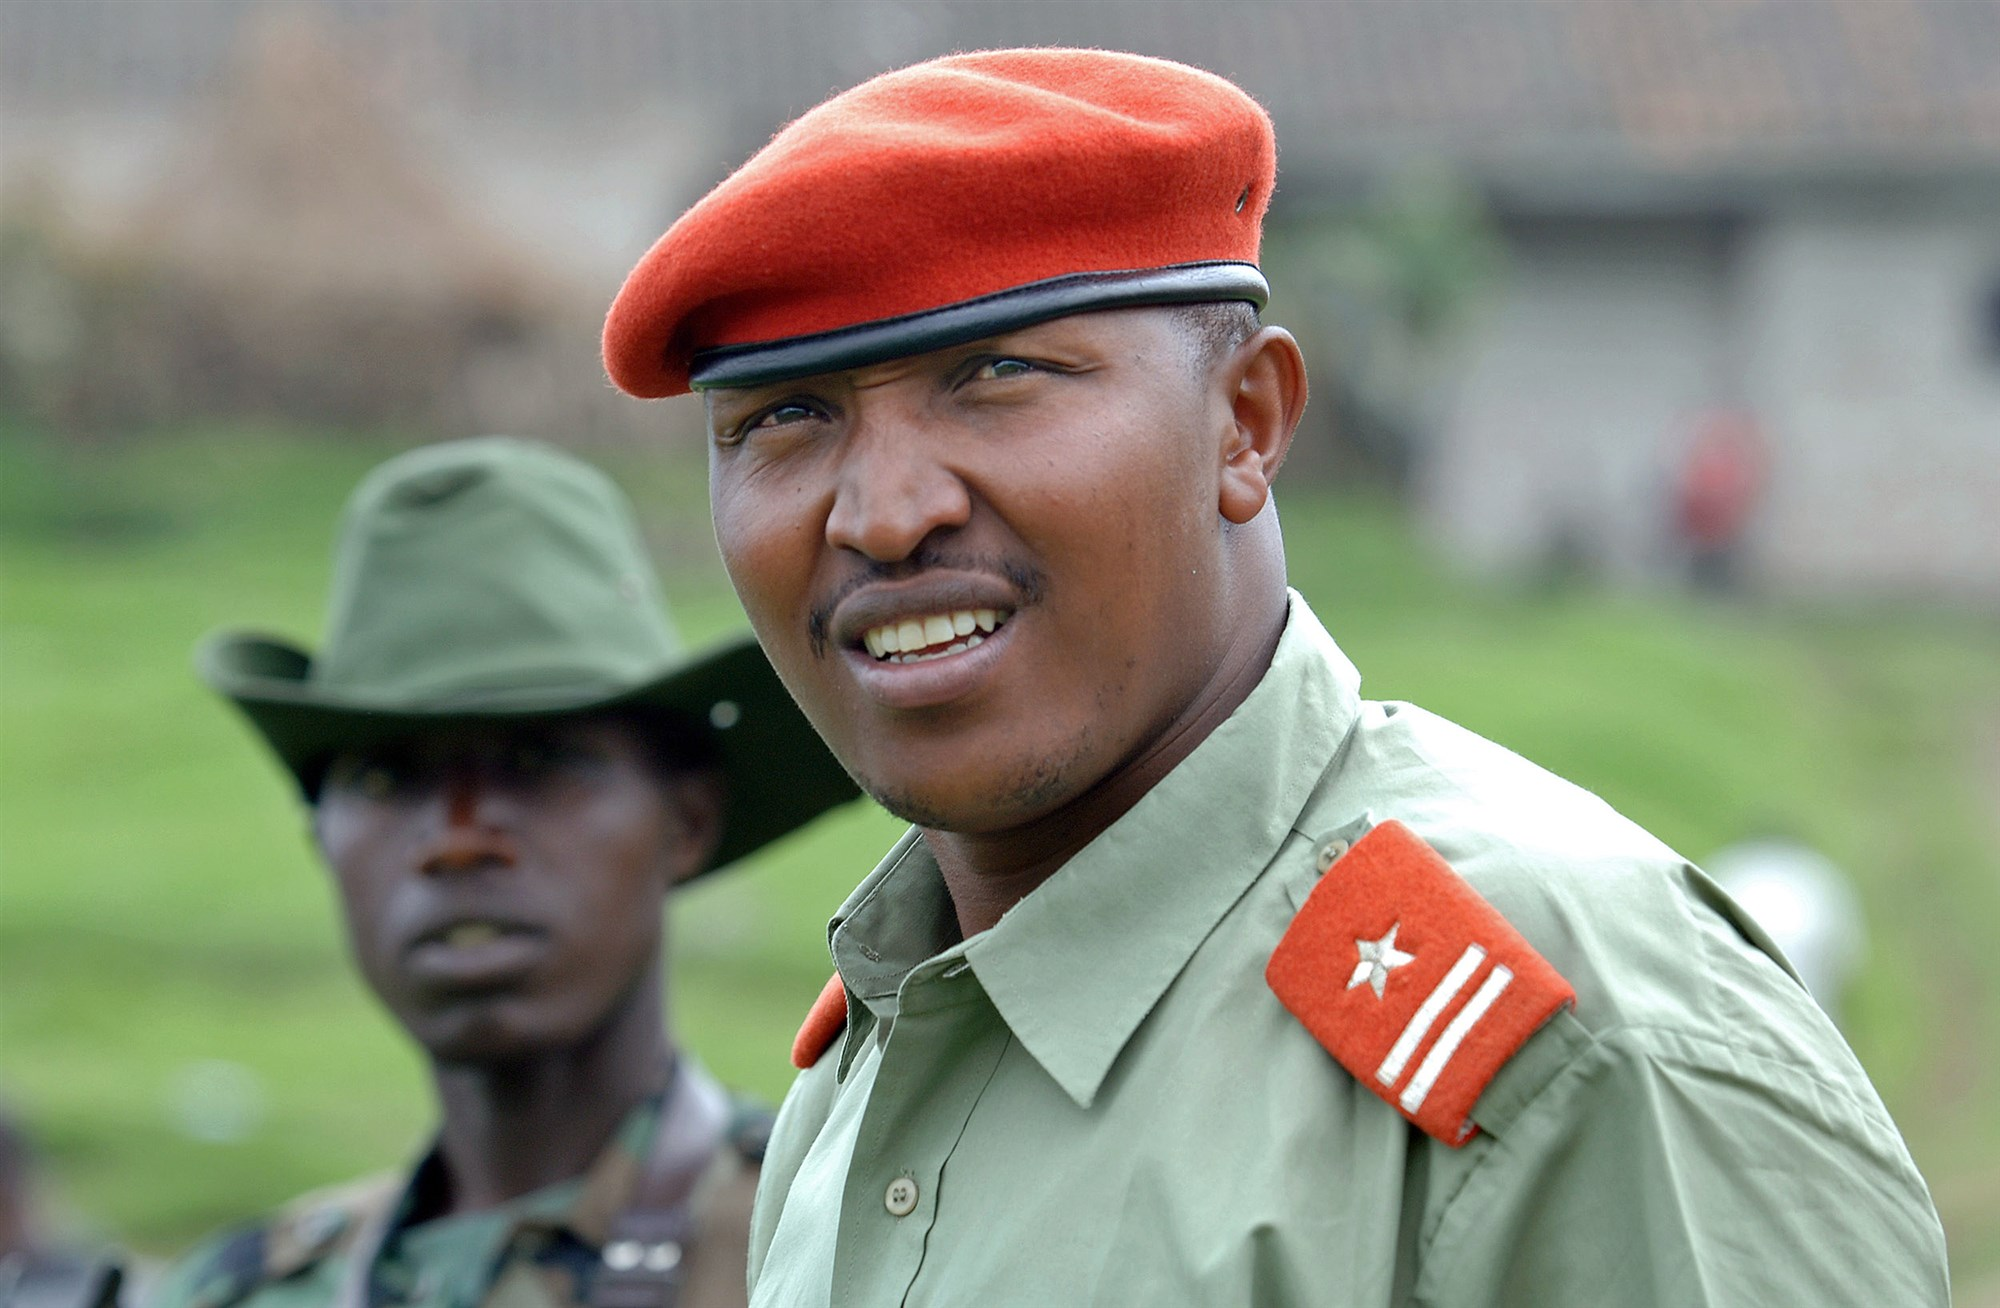 "International Criminal Court convicts Congo's Ntaganda of war crimes ""Some bodies were found naked, some had their hands tied up and some had their heads crushed. Several bodies were disemboweled."